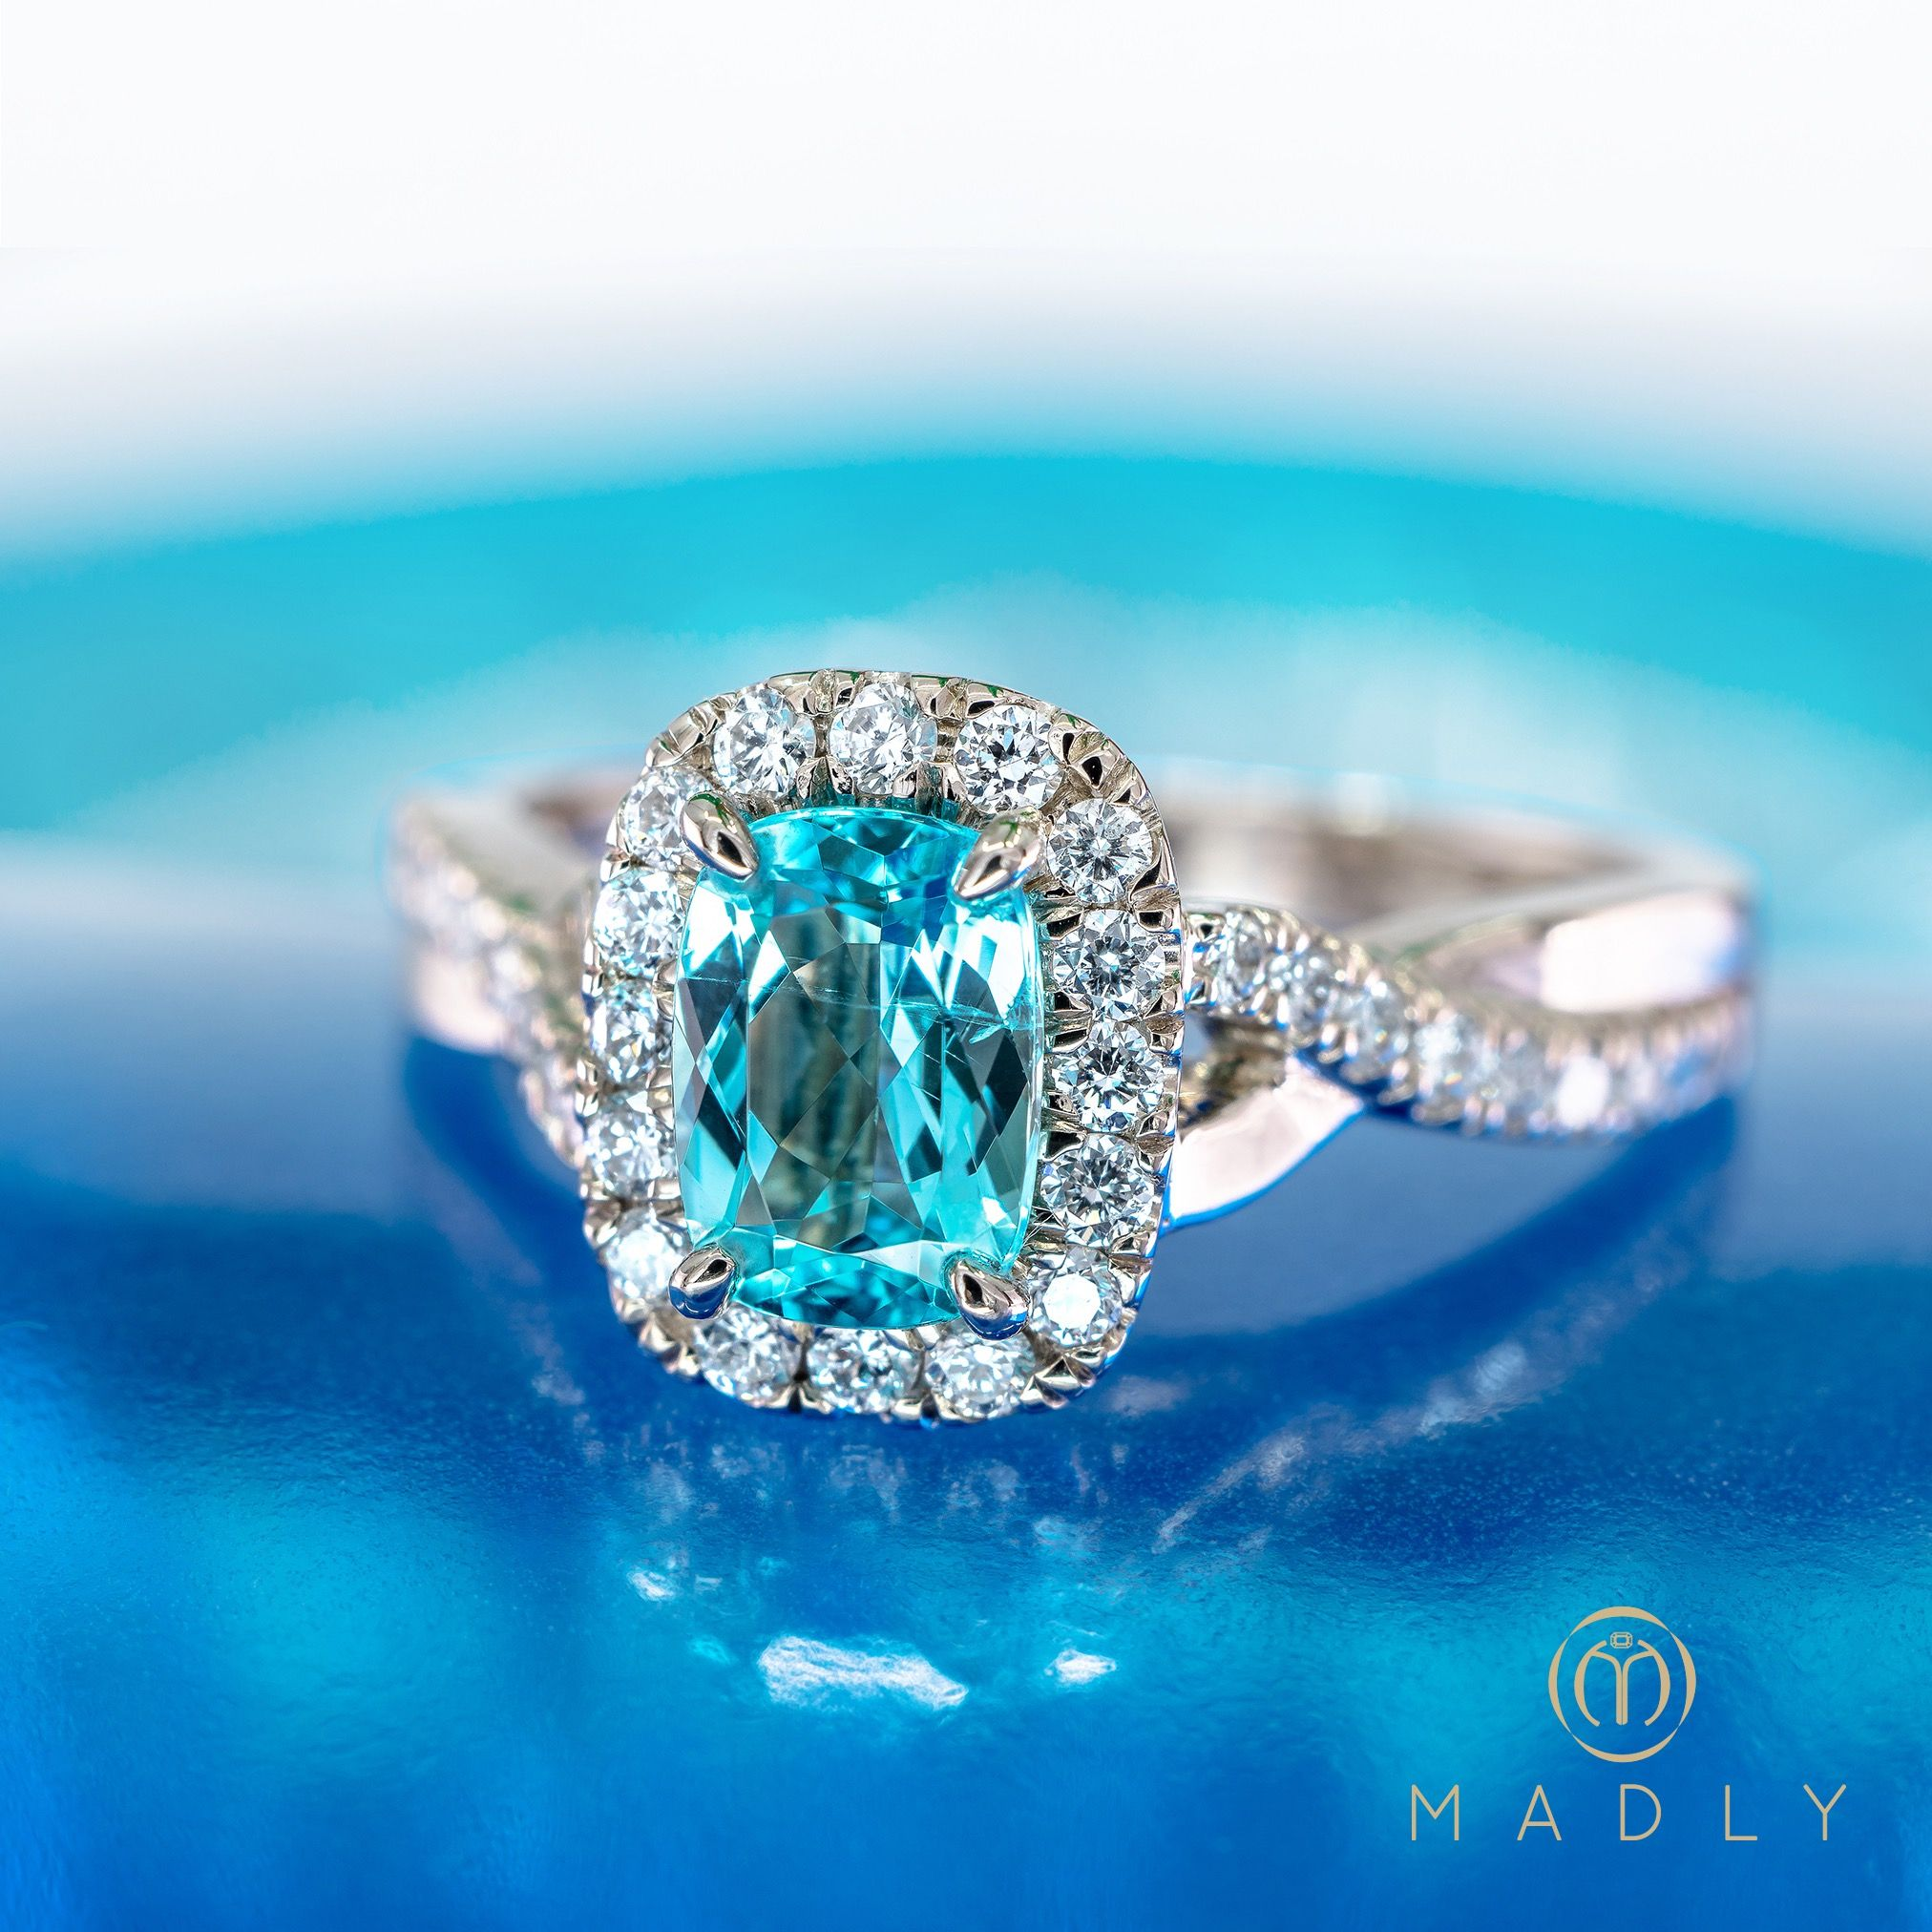 An outstanding neon blue Paraiba engagement ring by